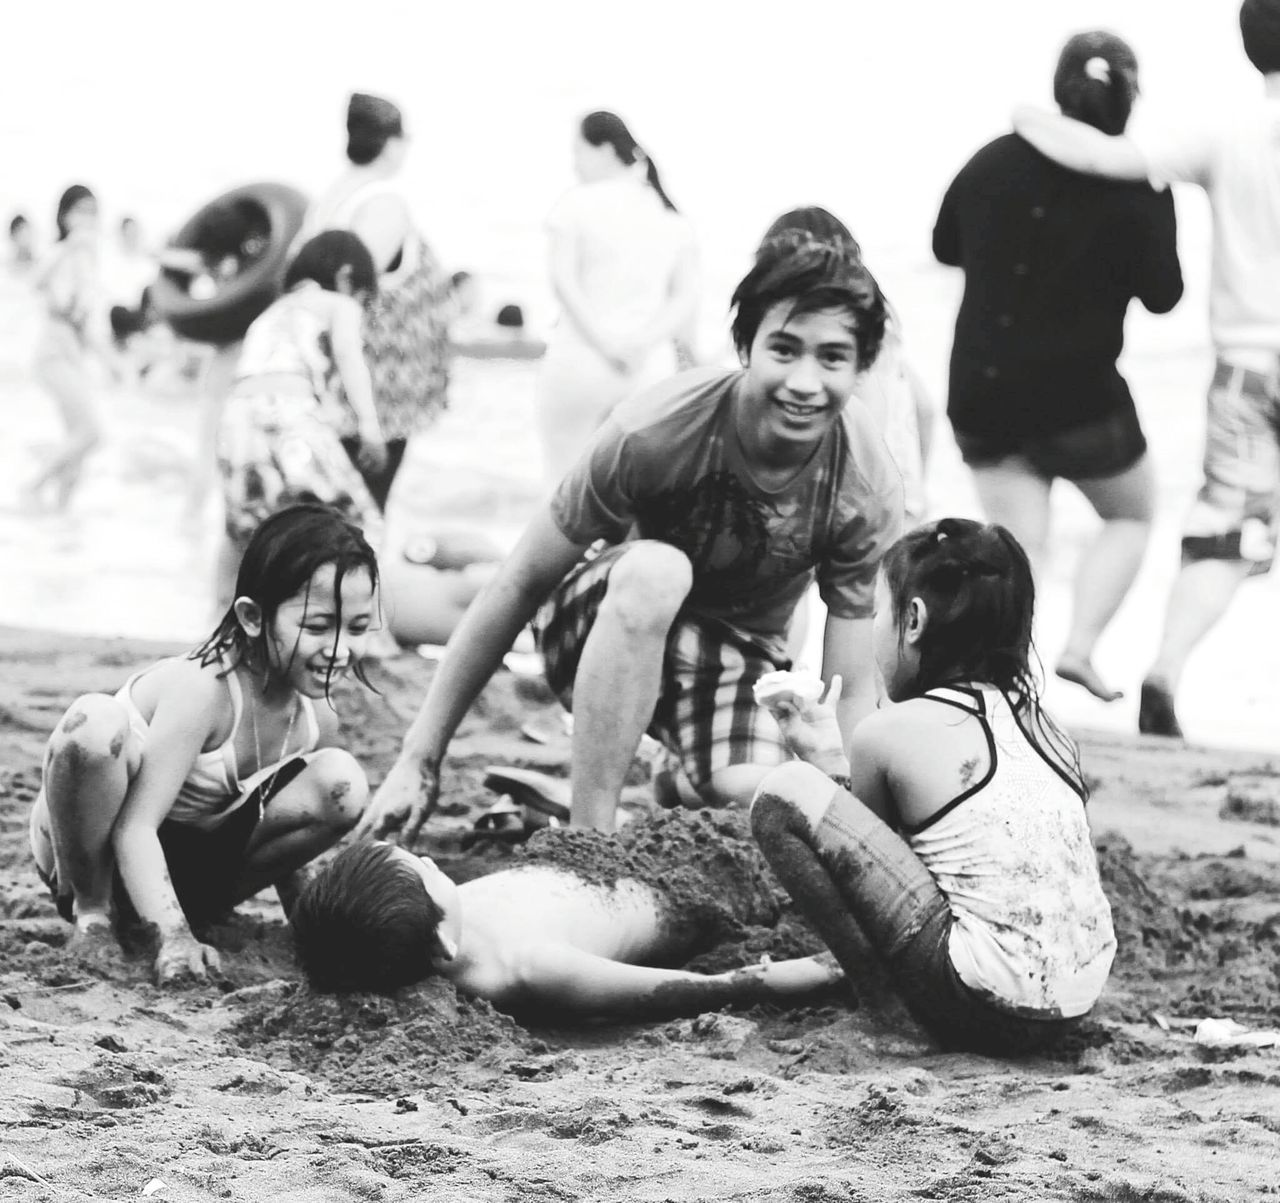 Kids Enjoying Life at the Beach of Real in Quezon Province 😎🌴 Taking Photos Relaxing Black And White Photography Candid Photography Beach Bummin Travel Photography Fresh On Eyeem  People Of The Oceans Outdoor Philippines Island Life Outdoor Photography Feel The Journey Original Experiences Eyeem Philippines